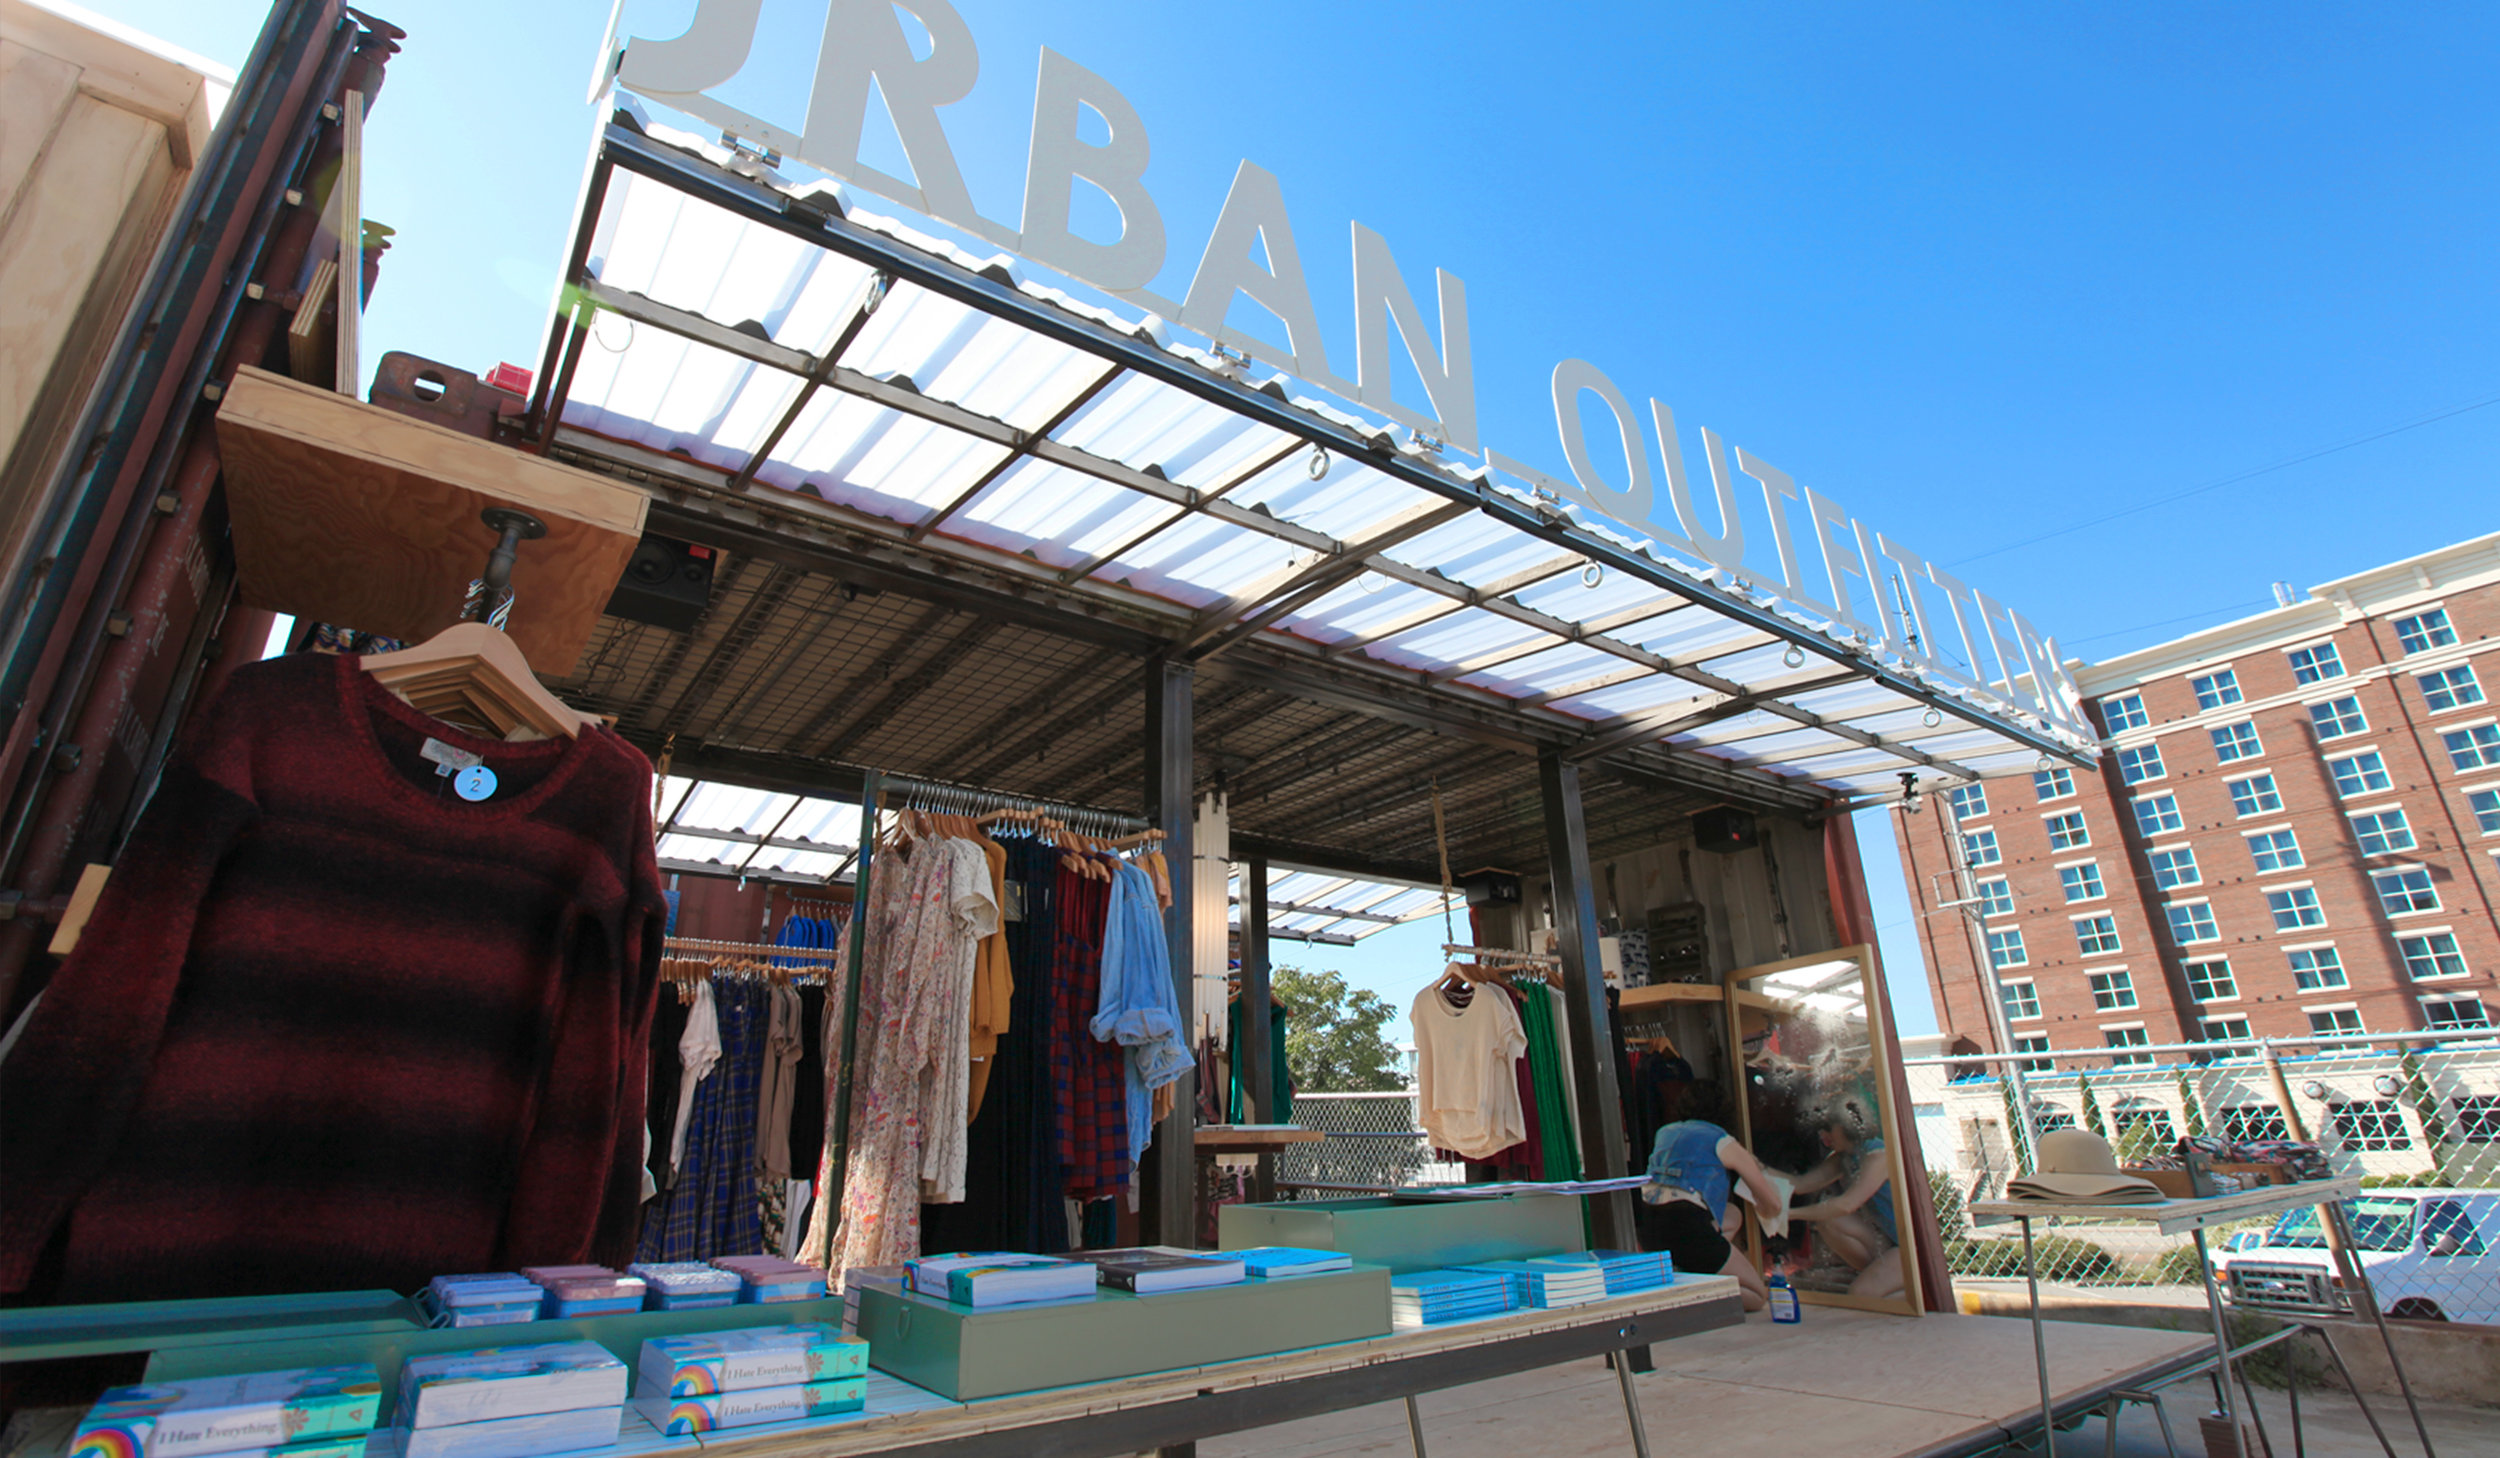 ImagiCorps worked directly with Urban Outfitters Store planners to design a mobile, but functional retail space that took best advantage of the limited space of used 20' shipping containers.